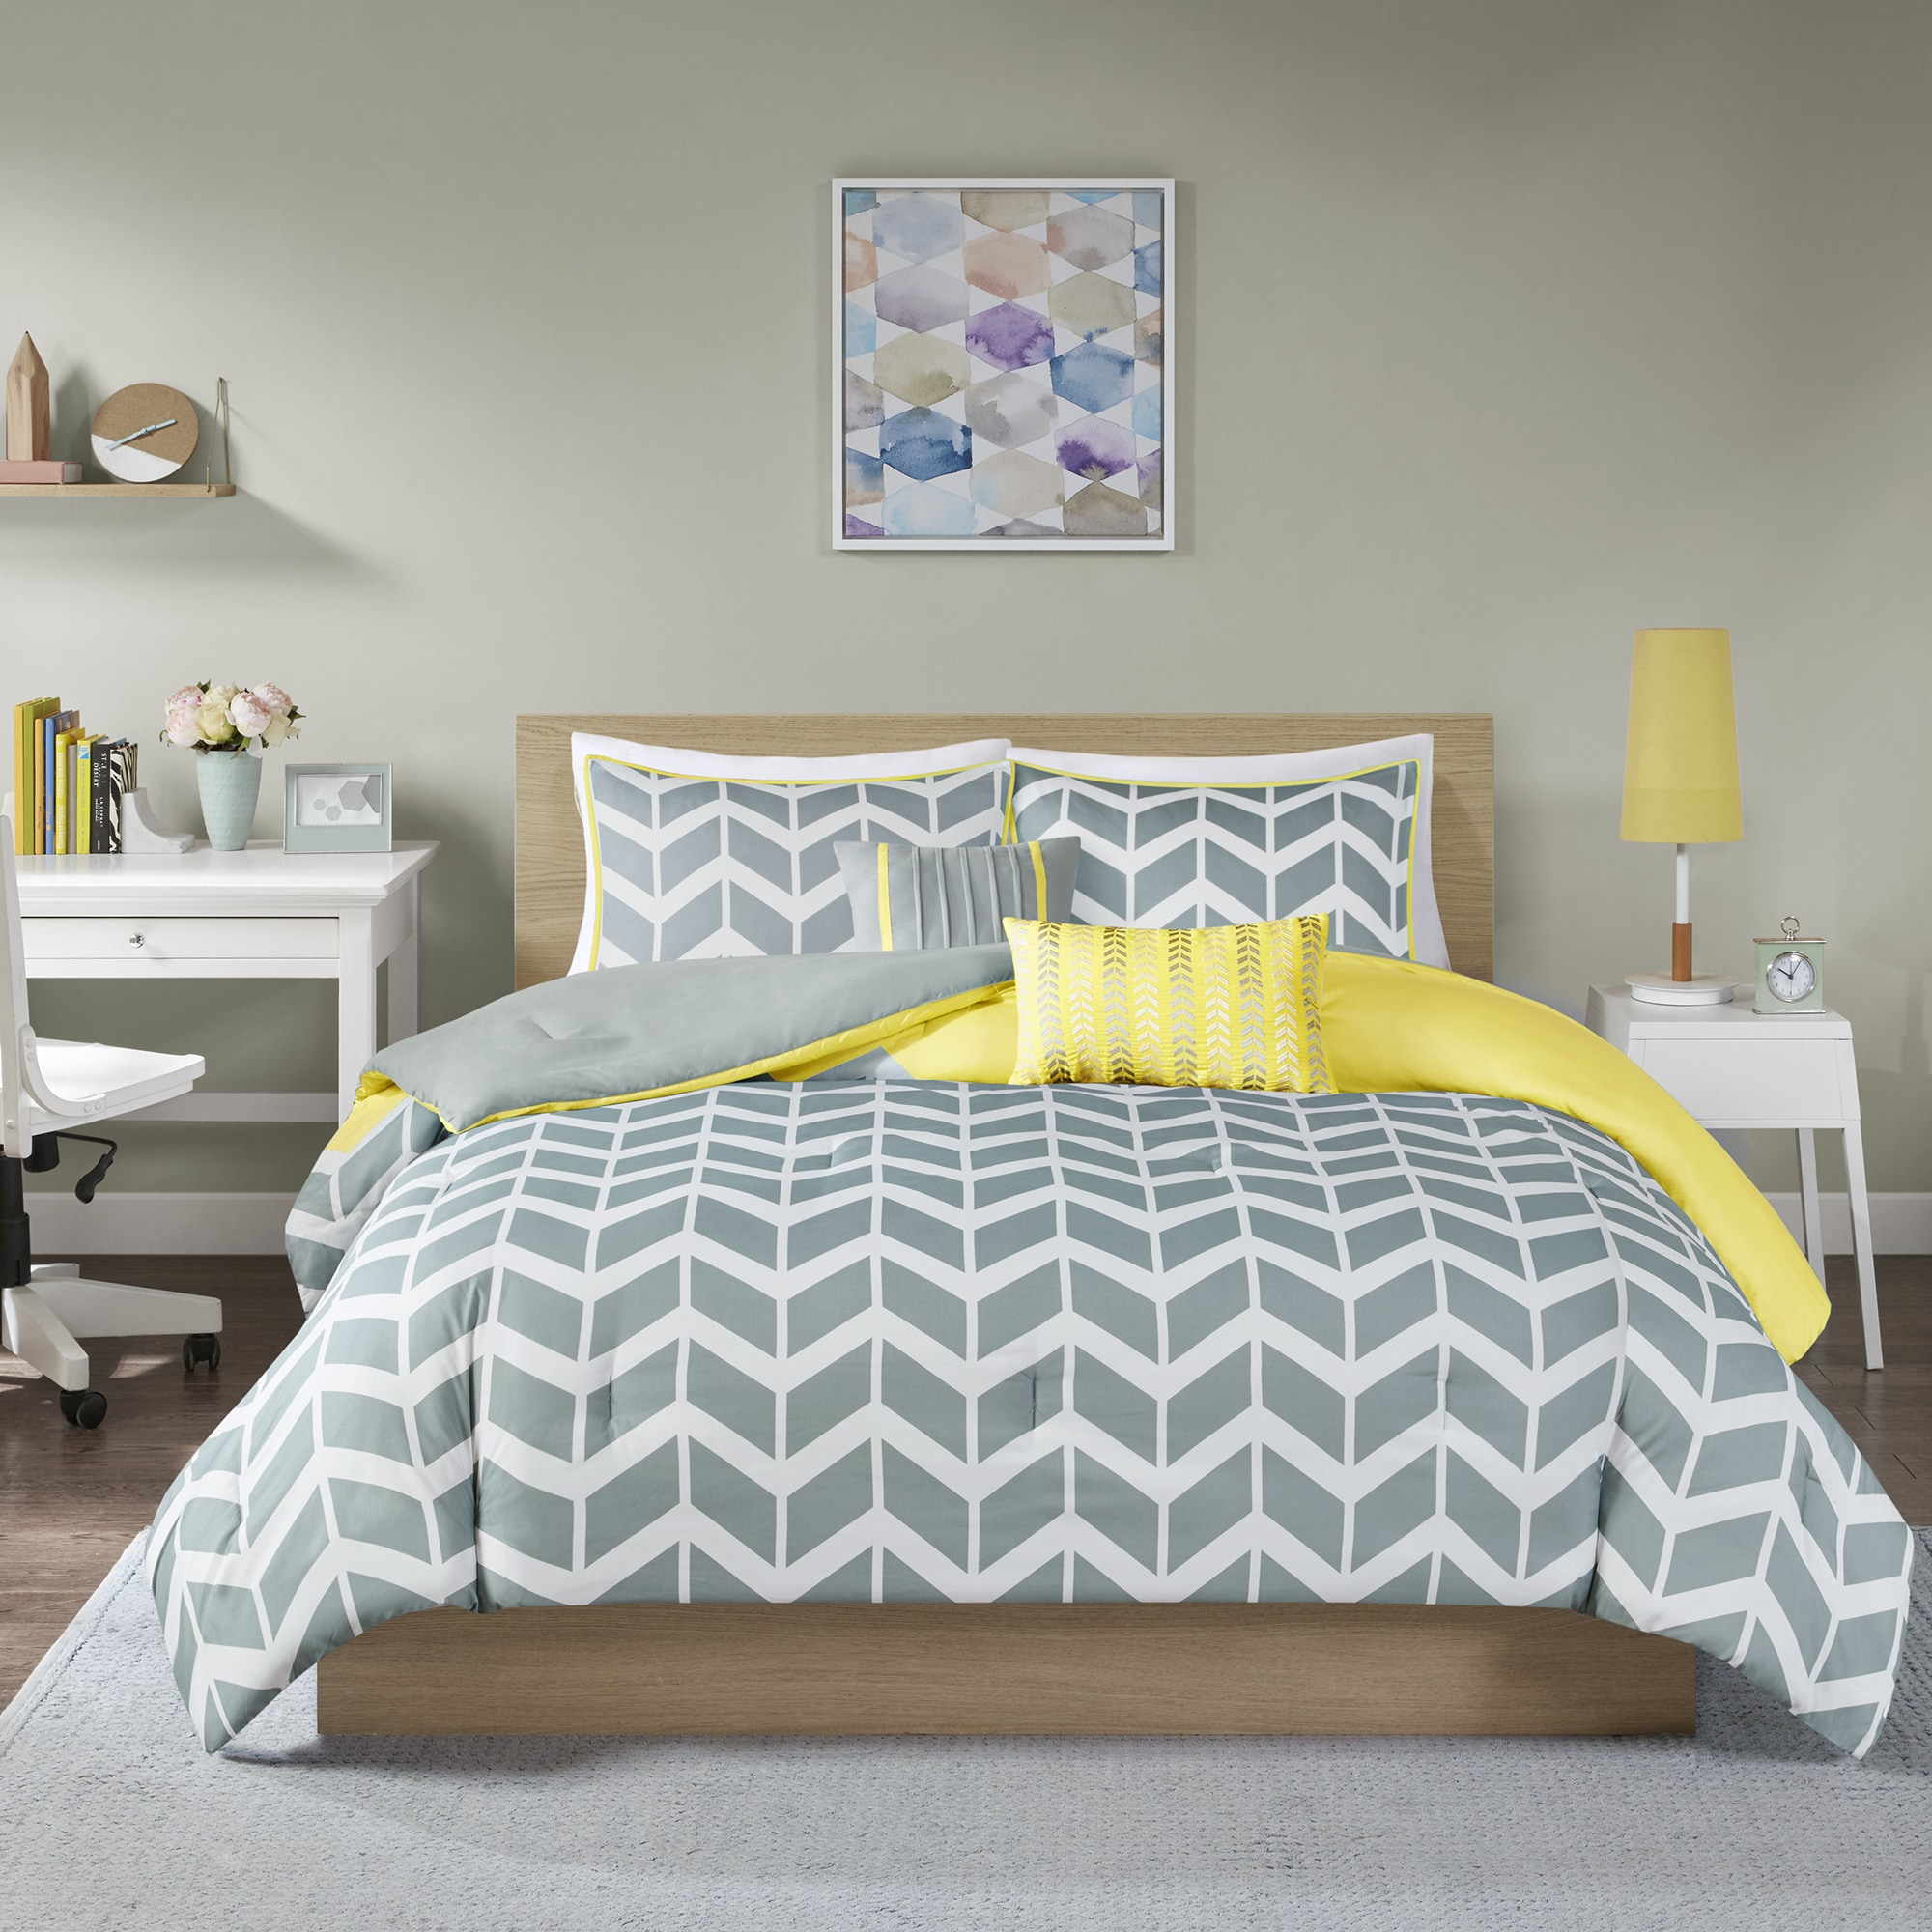 free overstock grey and shipping today bath bedding duvet kennedy design comforter gray cover intelligent set yellow product